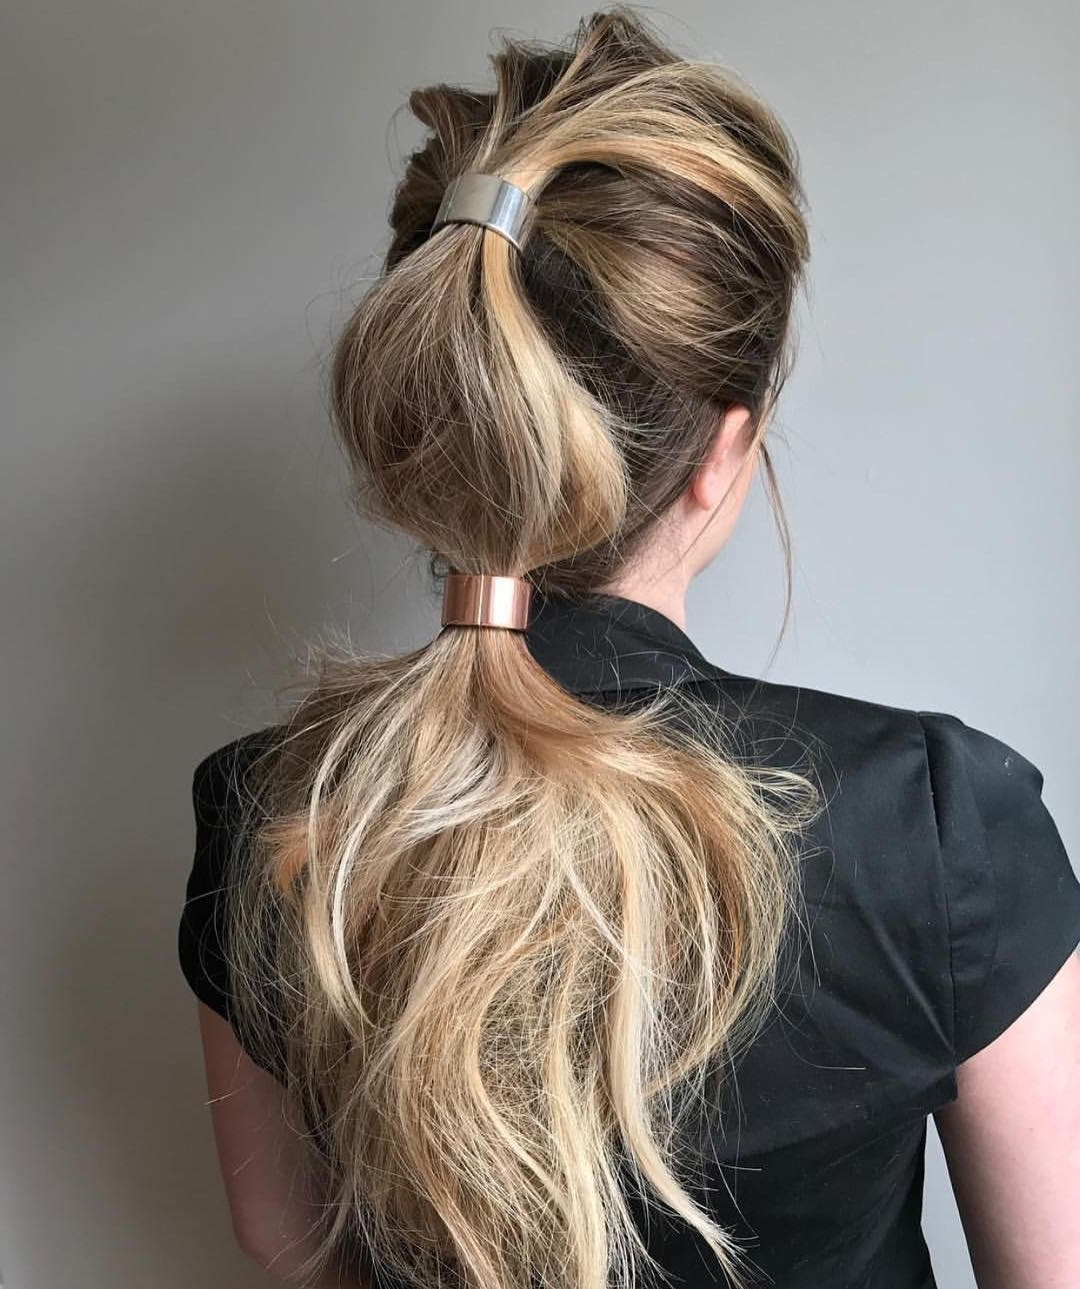 10 Trendiest Ponytail Hairstyles For Long Hair 2018 – Easy Ponytails With Current Low Twisted Pony Hairstyles For Ombre Hair (View 4 of 20)